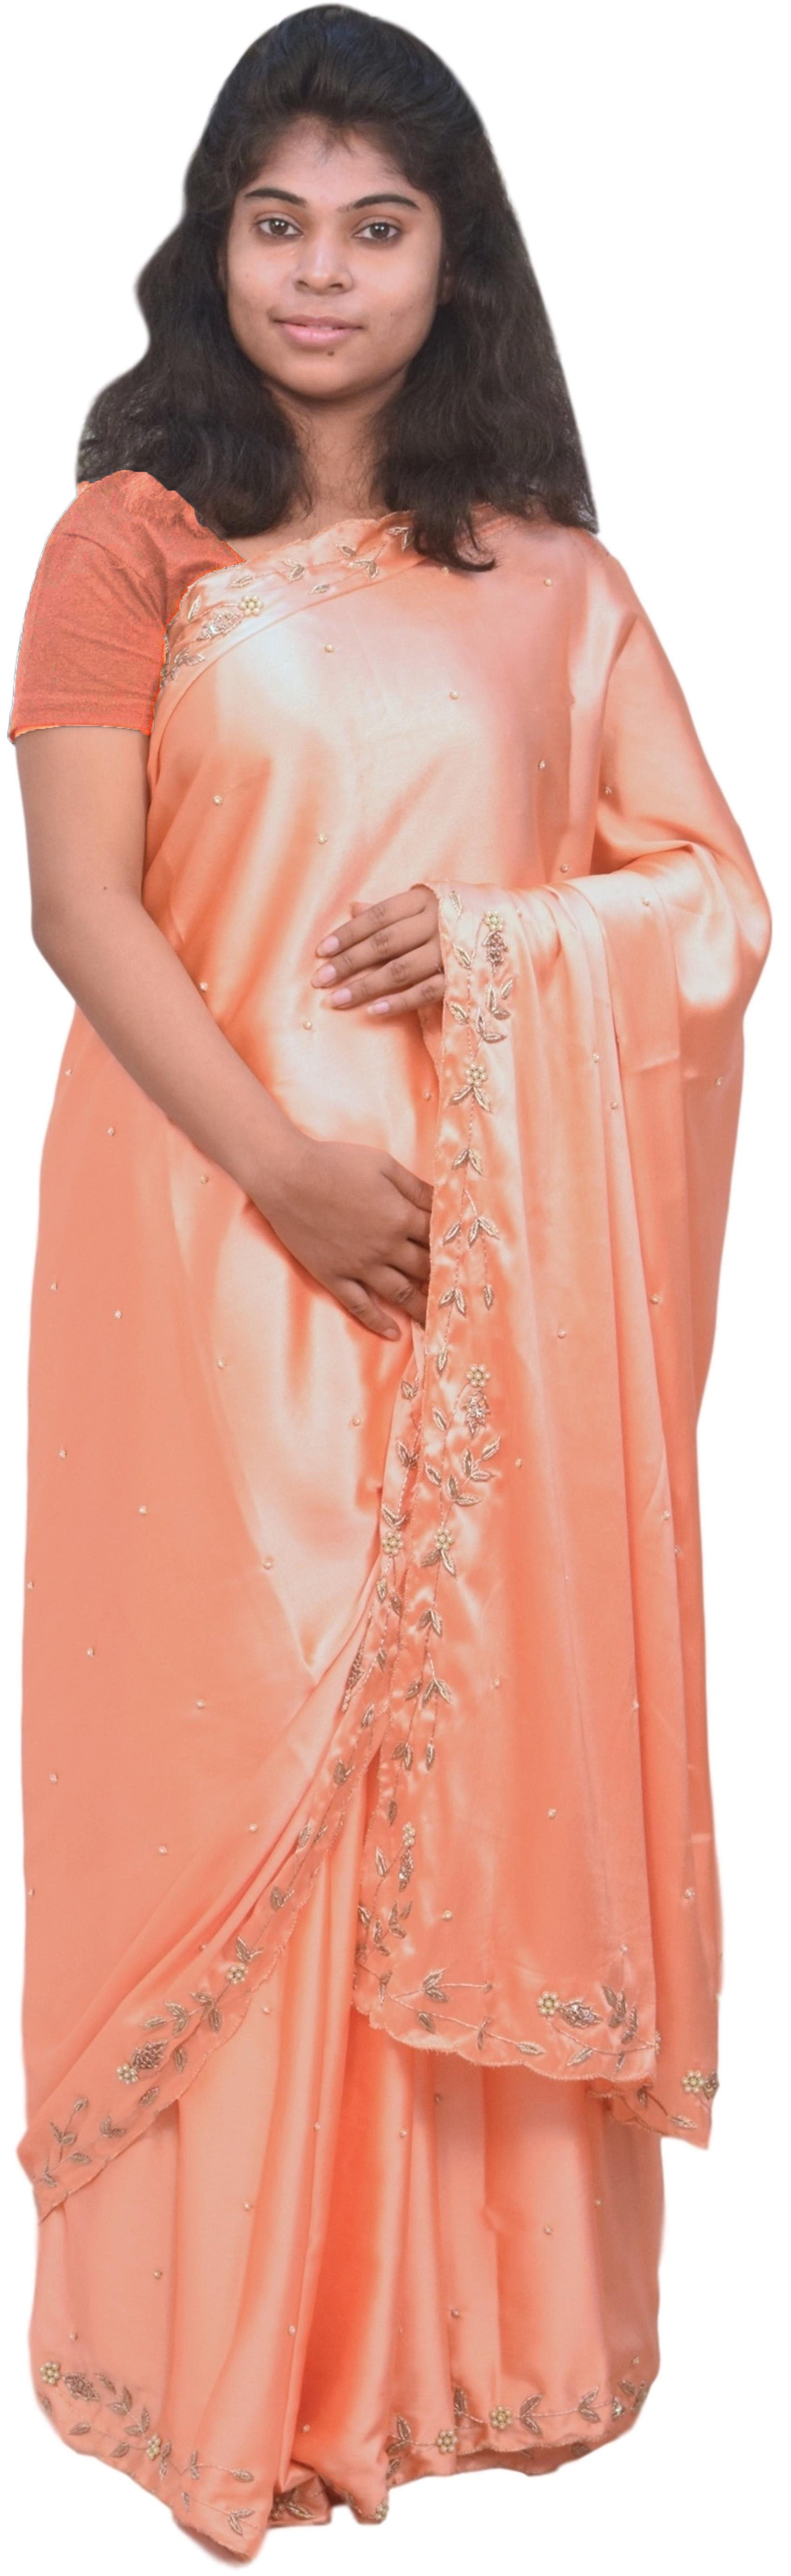 Peach Designer Bridal PartyWear Silk Bullion Pearl Beads Stone Work Wedding Cutwork Border Saree Sari